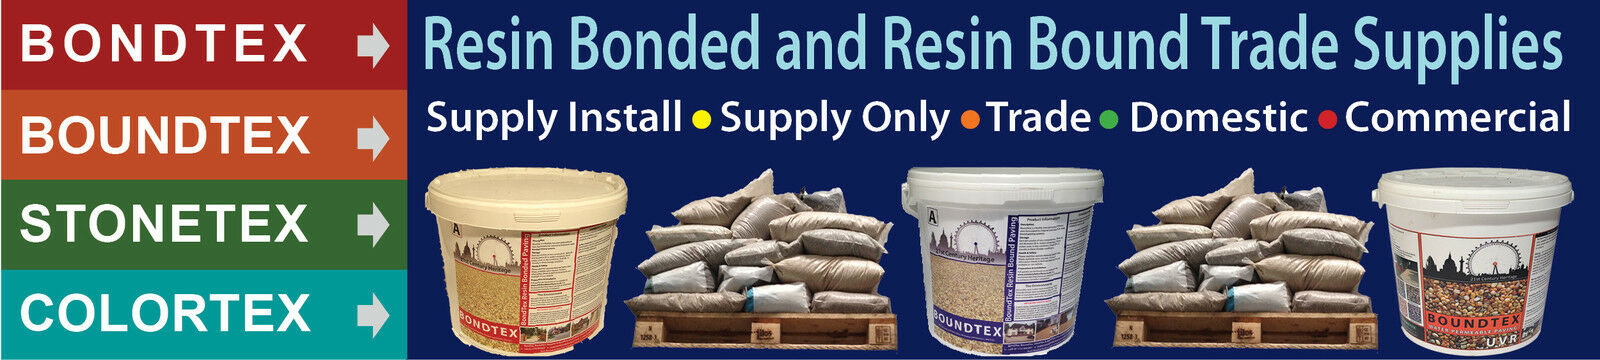 Trade Resin Bound Supplier